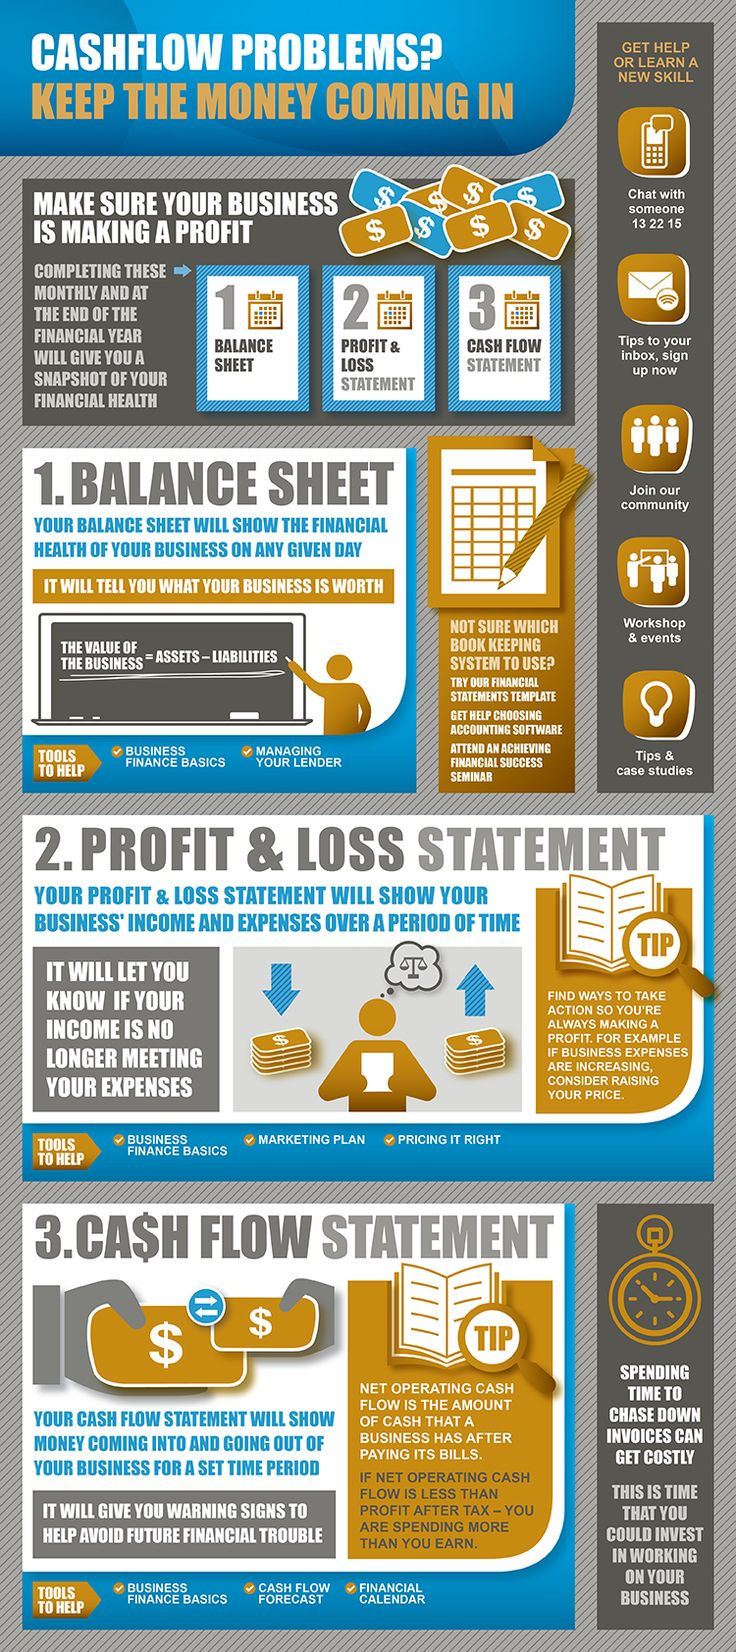 Infographic: Cashflow problems? Keep the money coming in - Finance Basics - Managing finances and tax - Operating a Business - Business Victoria